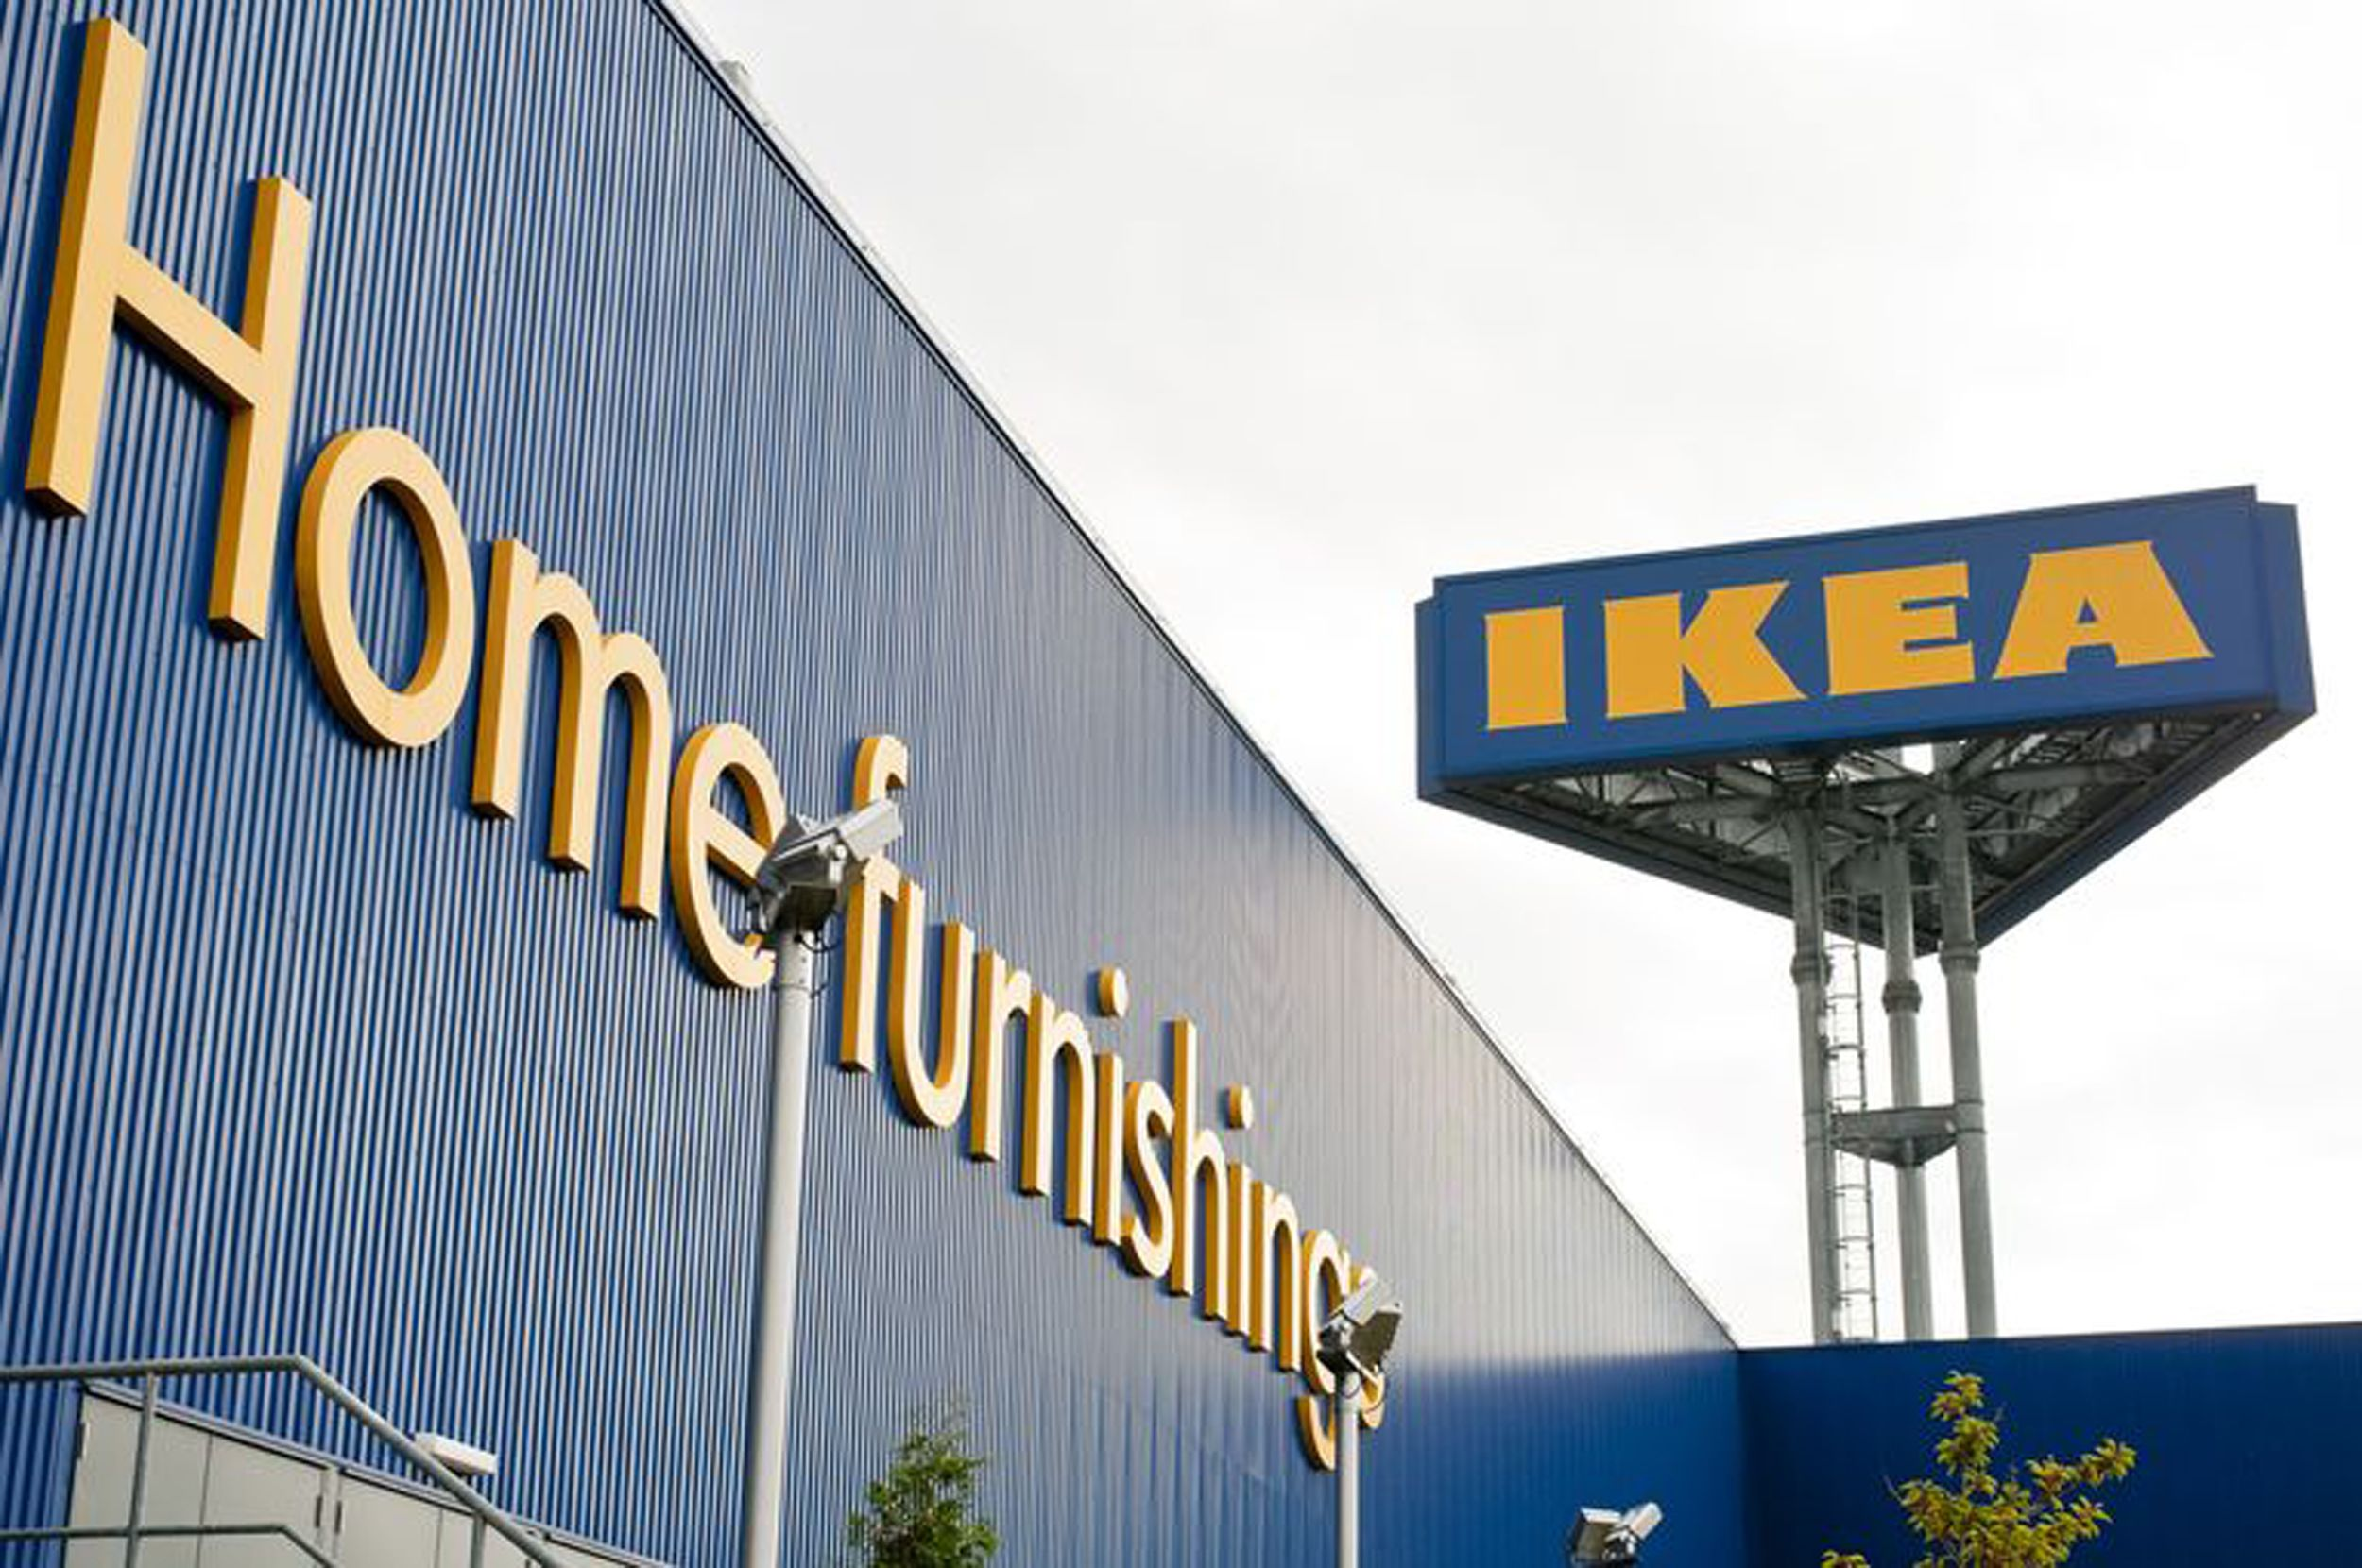 Here's How to Save Big at IKEA's Black Friday Sale This Year